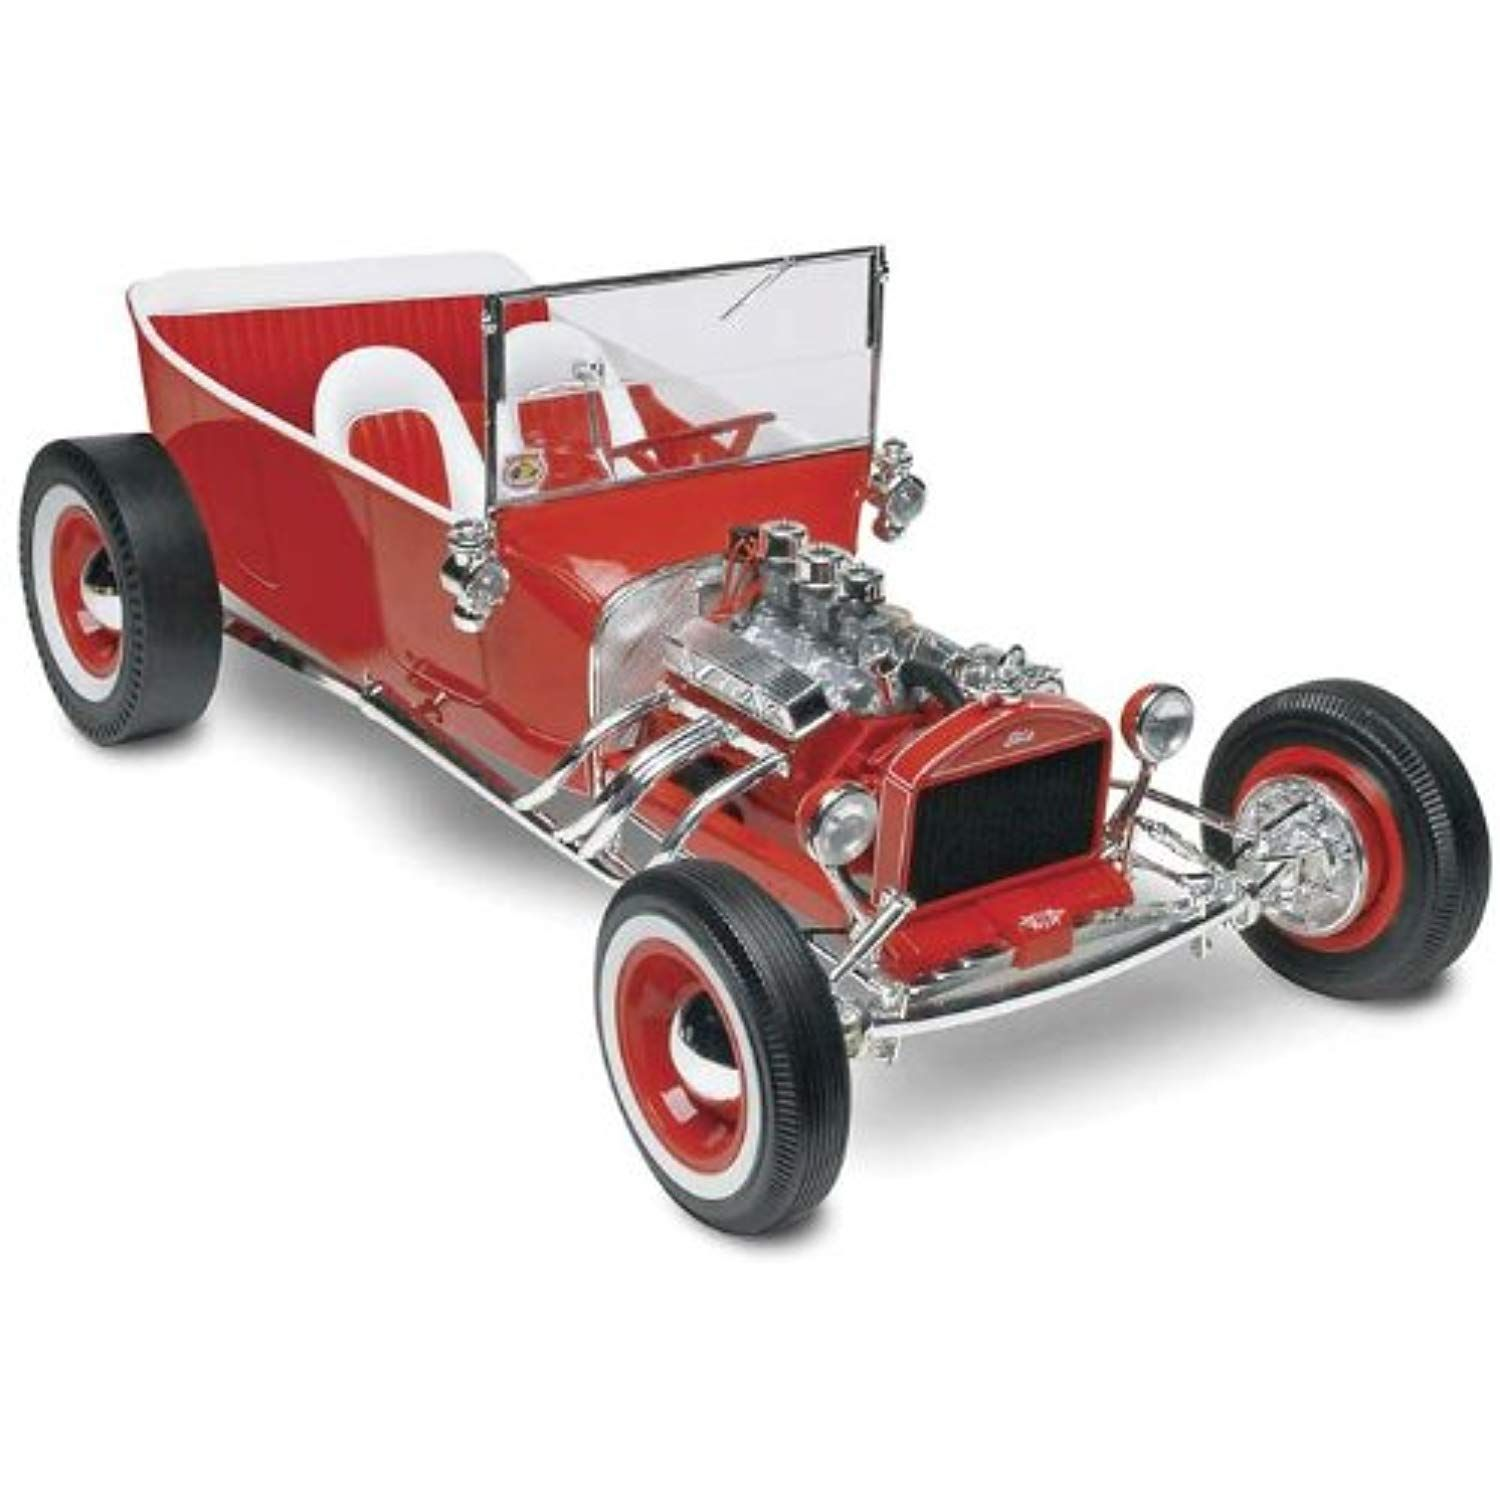 Revell Ford Model T Big Tub 2 In 1 Large Scale Plastic Kit